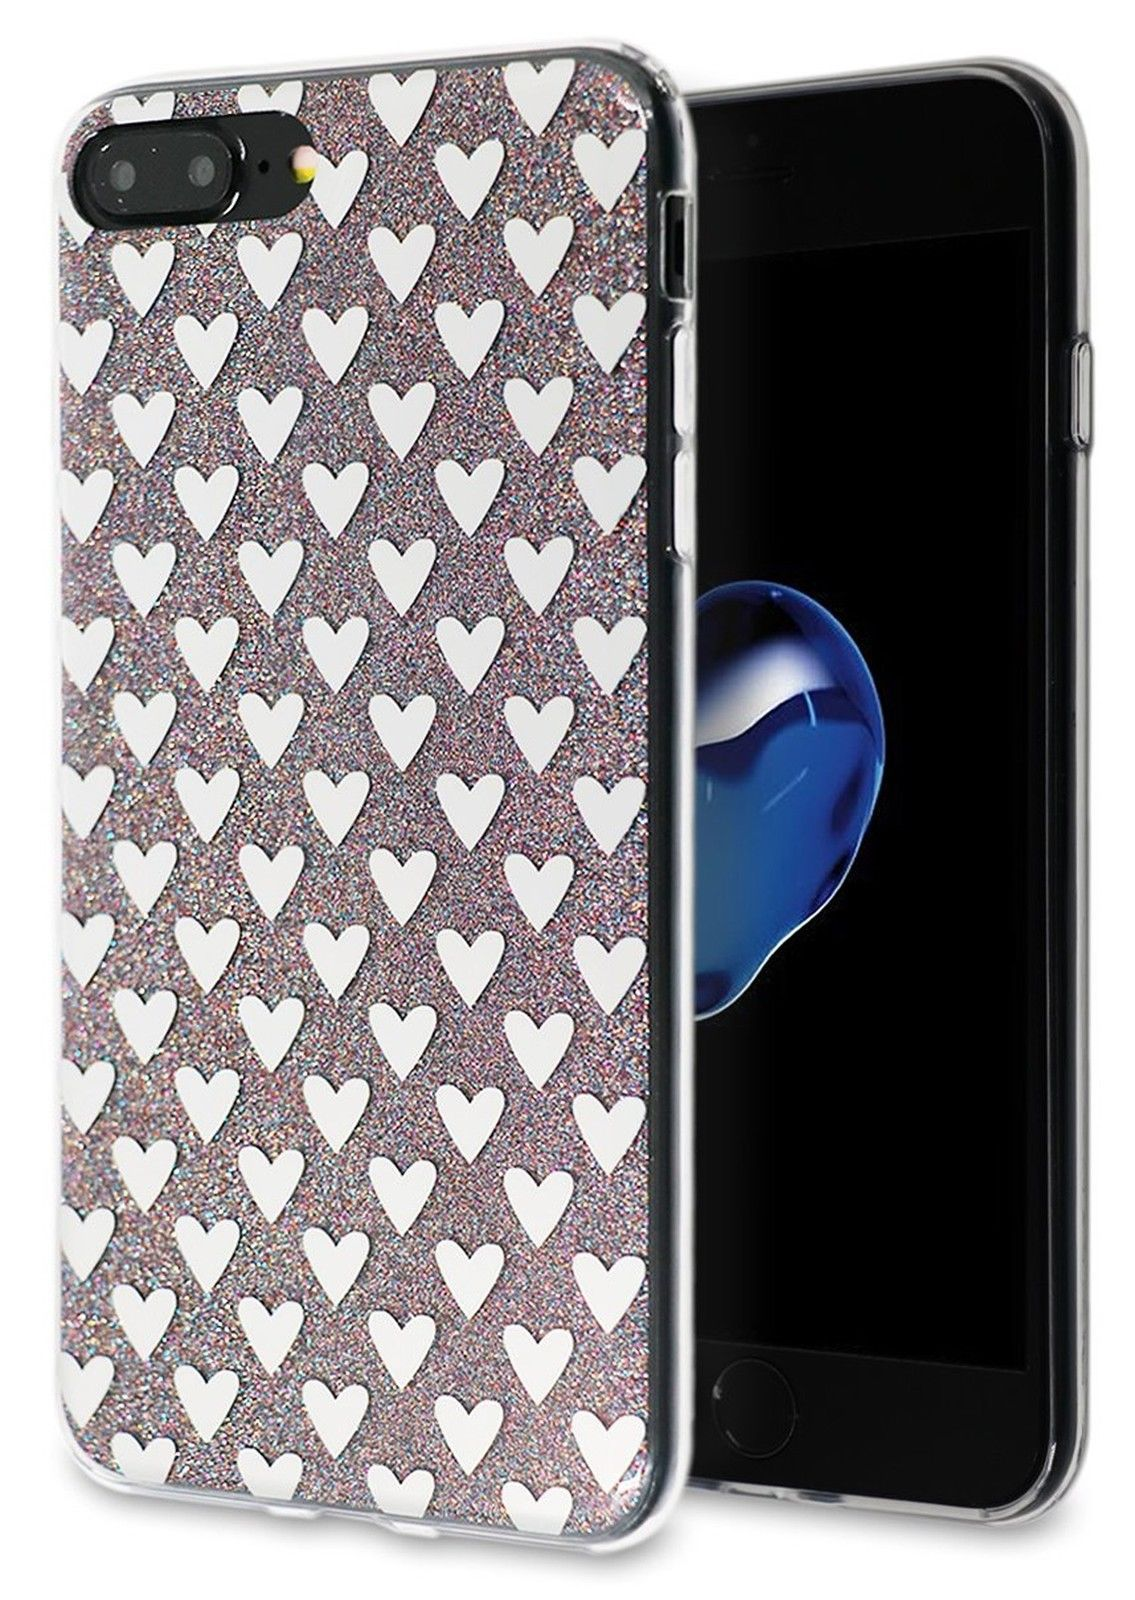 MIRROR HEART SPARKLES Cute Bling Phone Case Cover Accessories For iPHONE 7  PLUS  4823a1d5a596